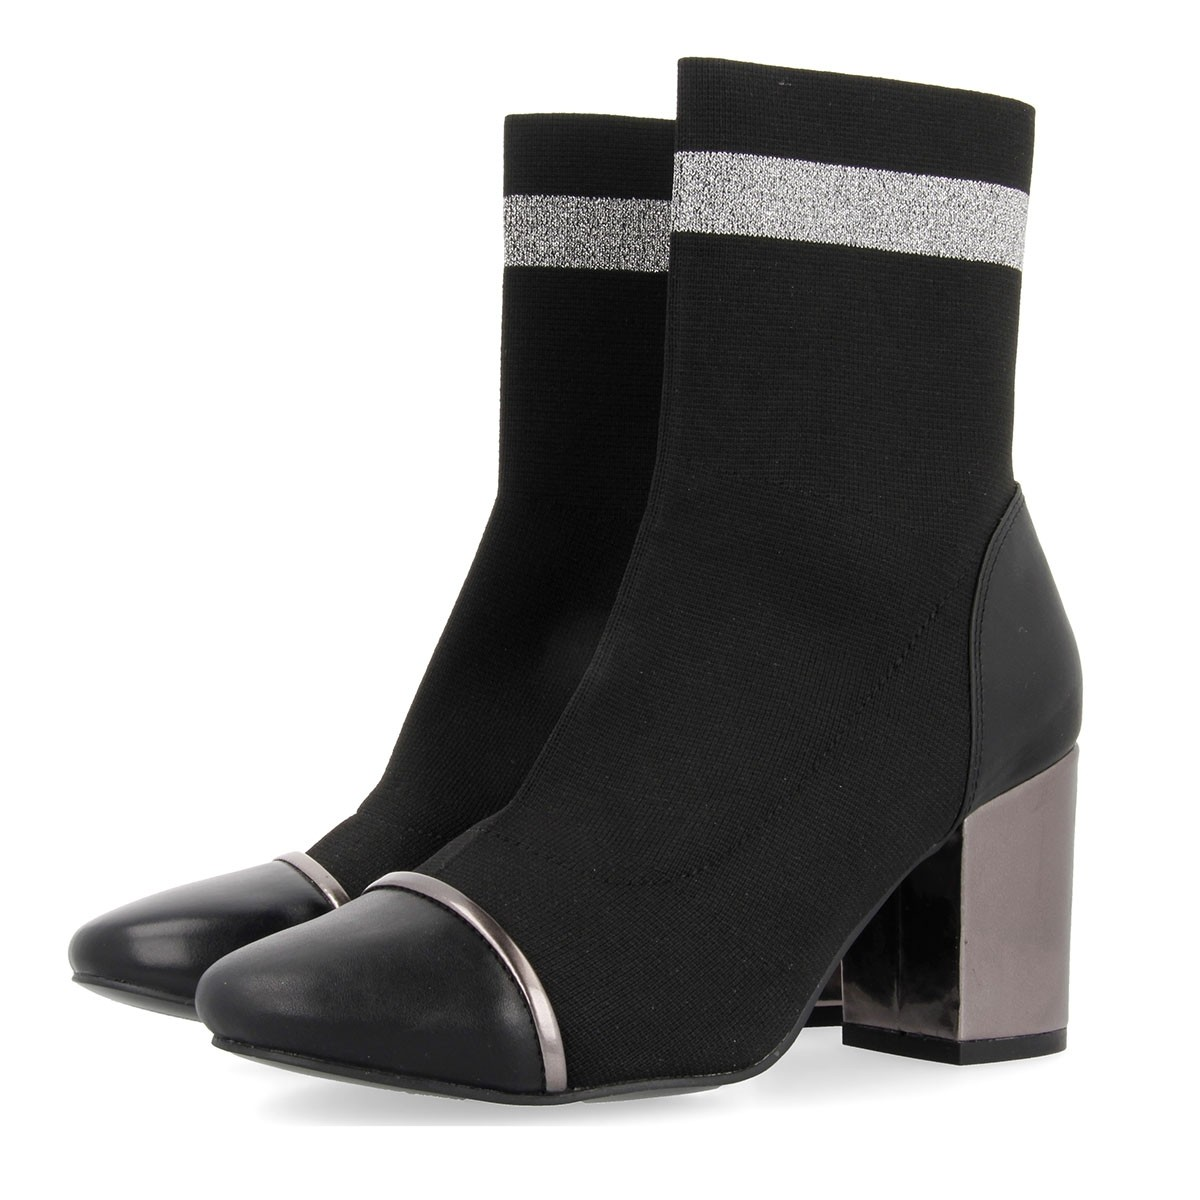 46423 Black-Silver BOOTS 4